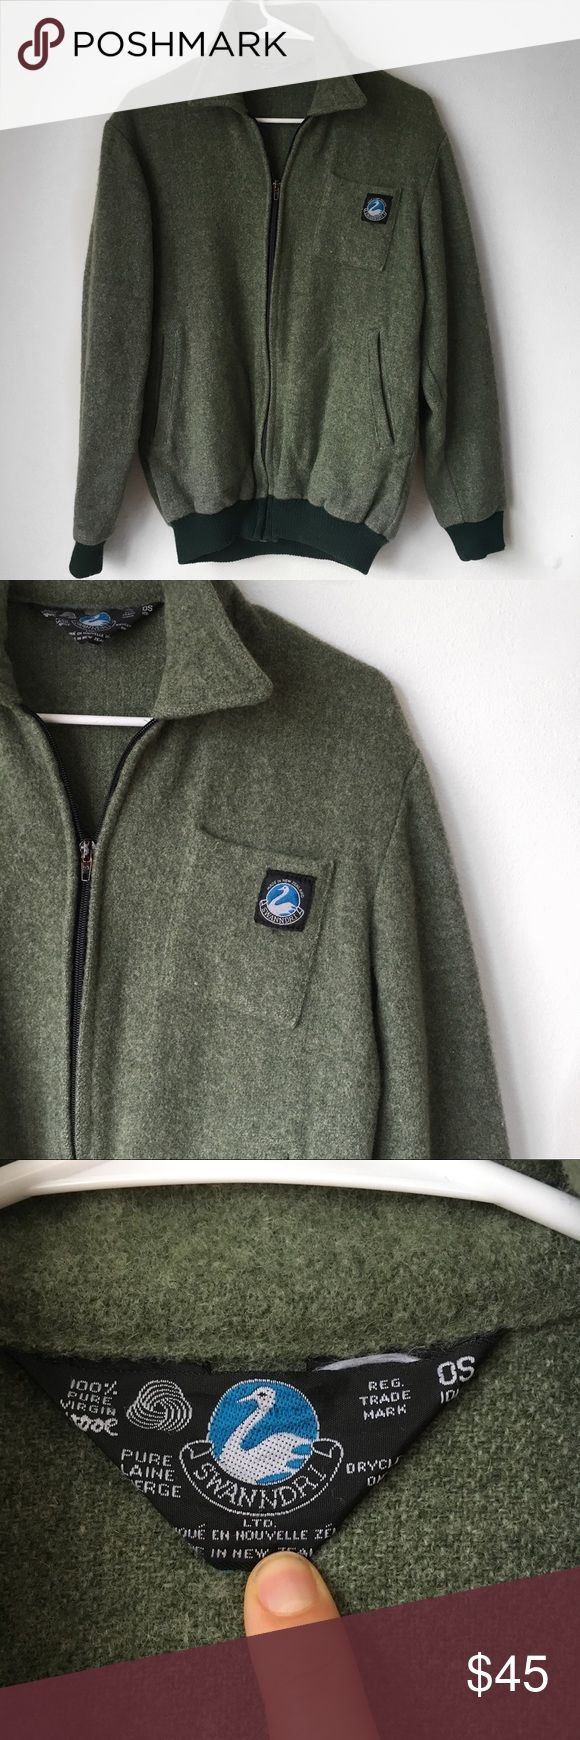 Vintage 1980s Green Wool Bomber Jacket Beautiful 100% virgin wool bomber jacket from Swanndri. In very good condition. Super warm for the fall/winter months. Cool bomber style. Vintage Jackets & Coats